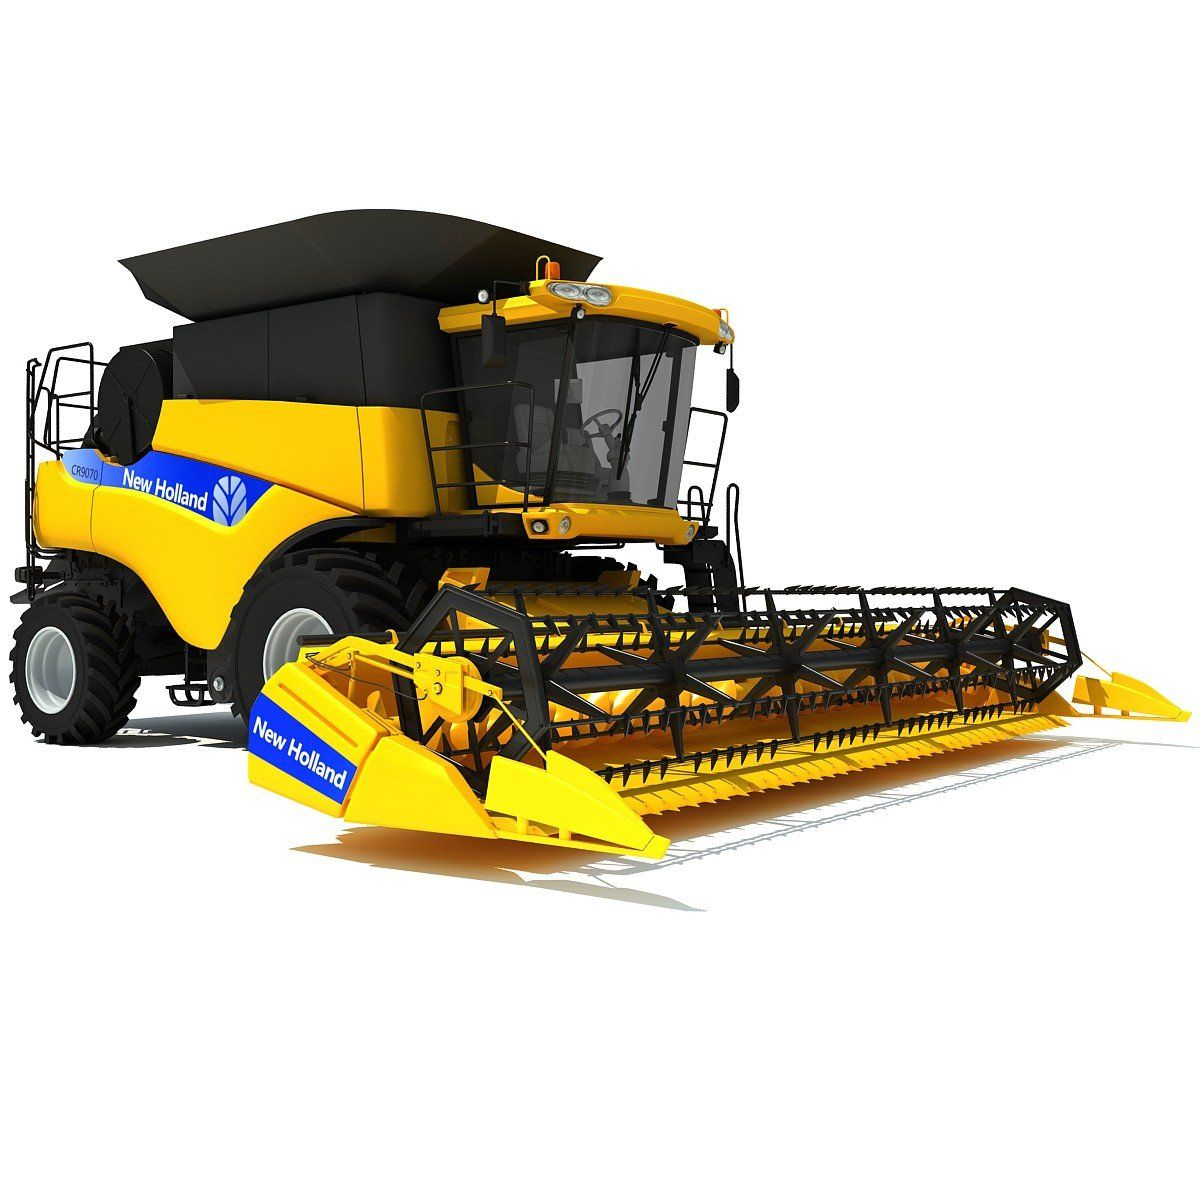 New Holland Combine V2 New Holland Combine New Holland Holland